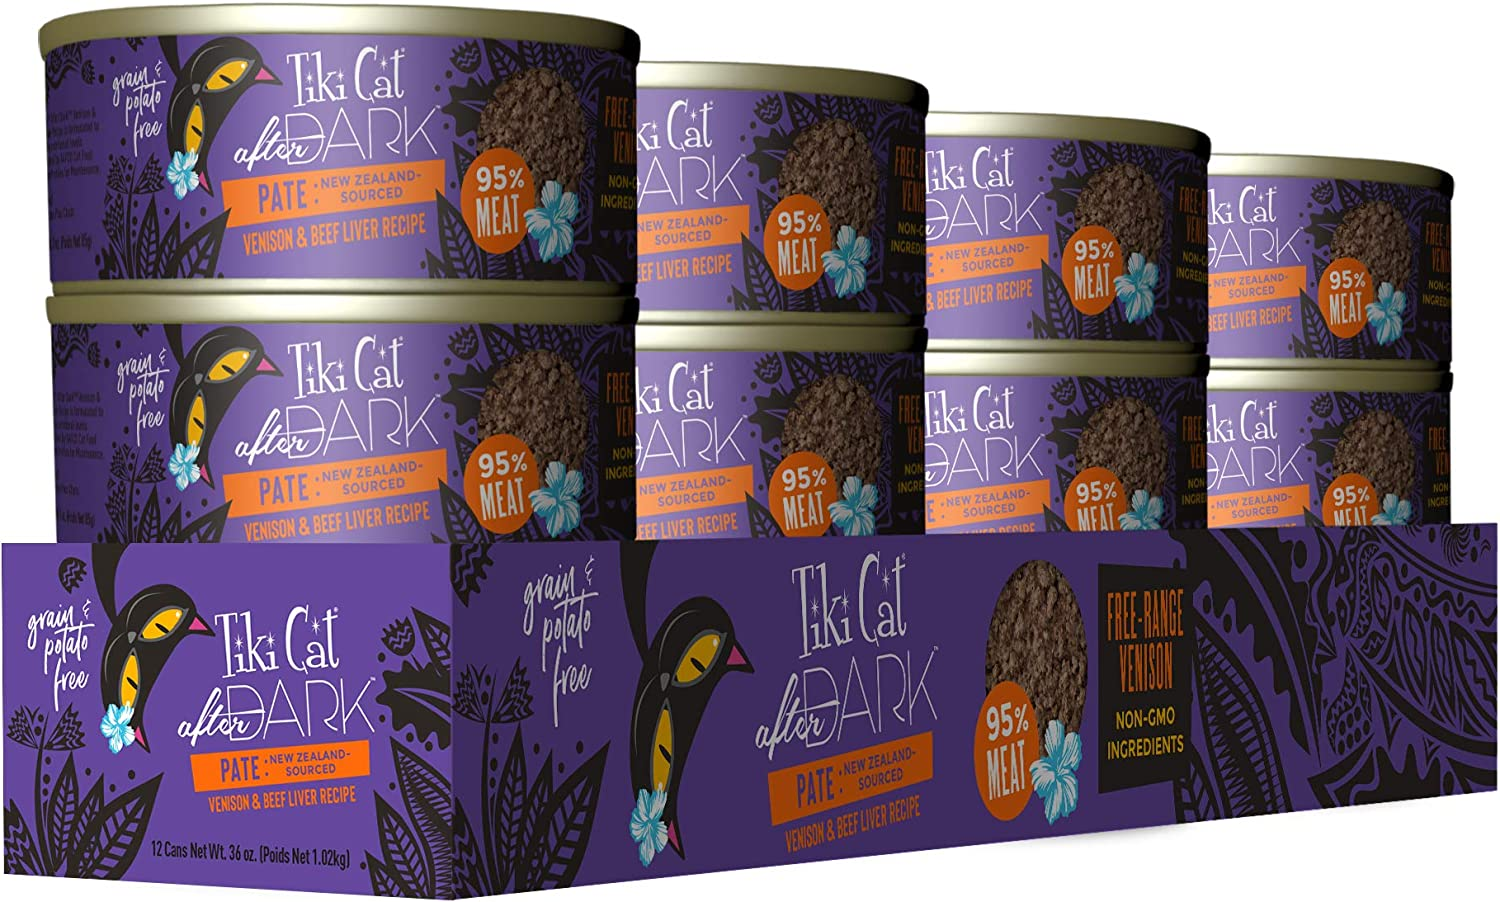 Tiki Cat After Dark Grain Free Wet Food with Meat, Chicken, Organ Meats Liver Gizzards and Heart for Cats & Kittens